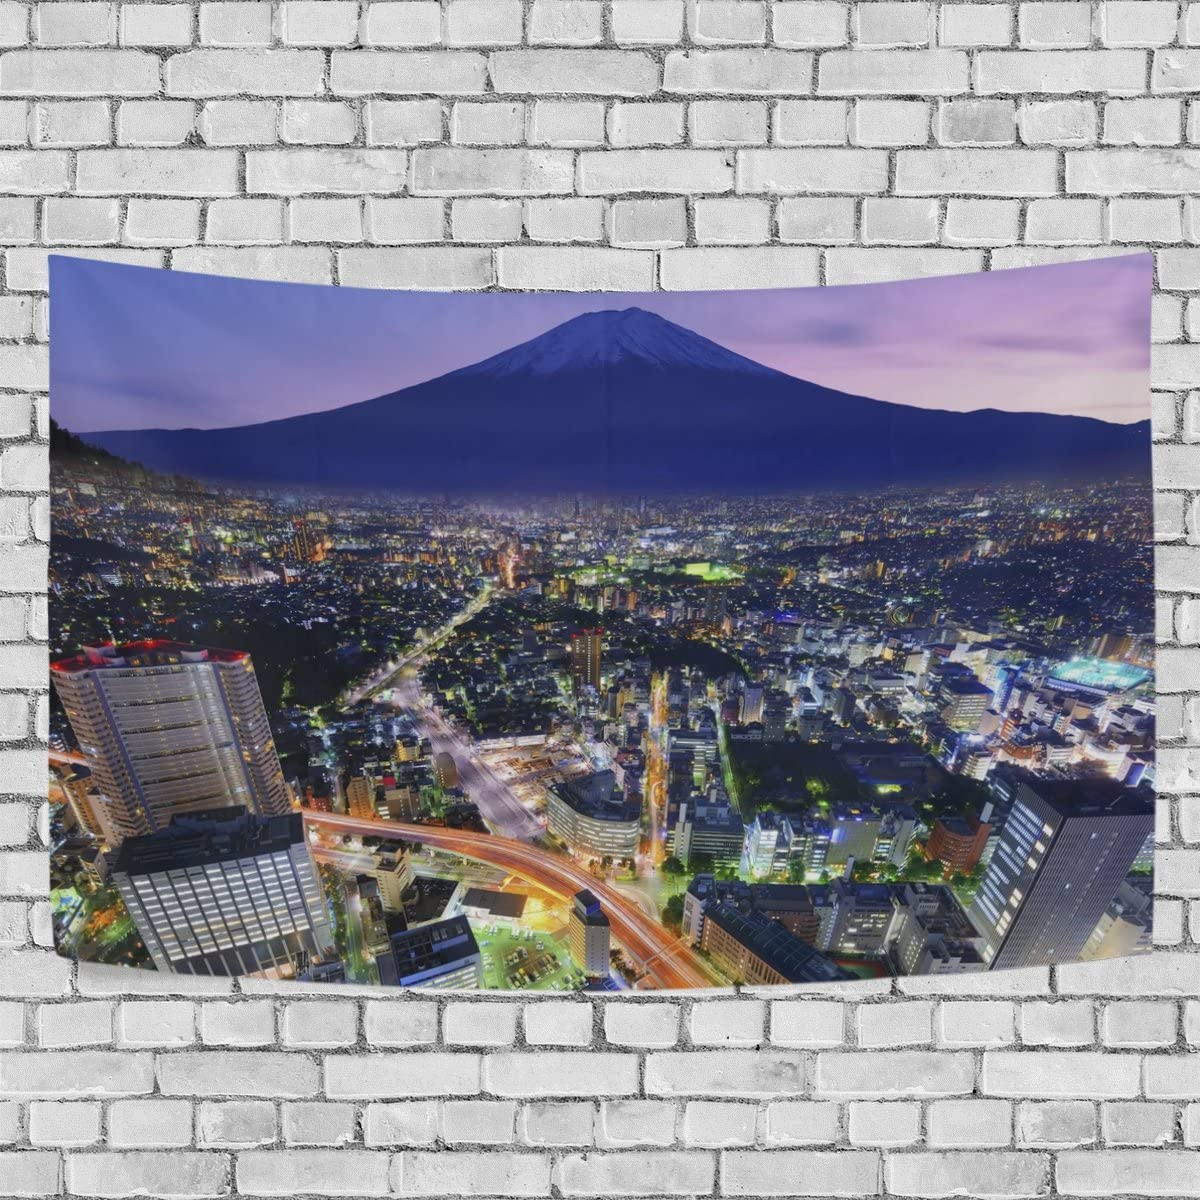 WALLD Ethel Ernest Mt. Fuji And Flourishing City Yokohama Wall Art Decorative, Wall Hanging Tapestry for Bedroom Living Room Dorm Decoration,60 X 40 Inches